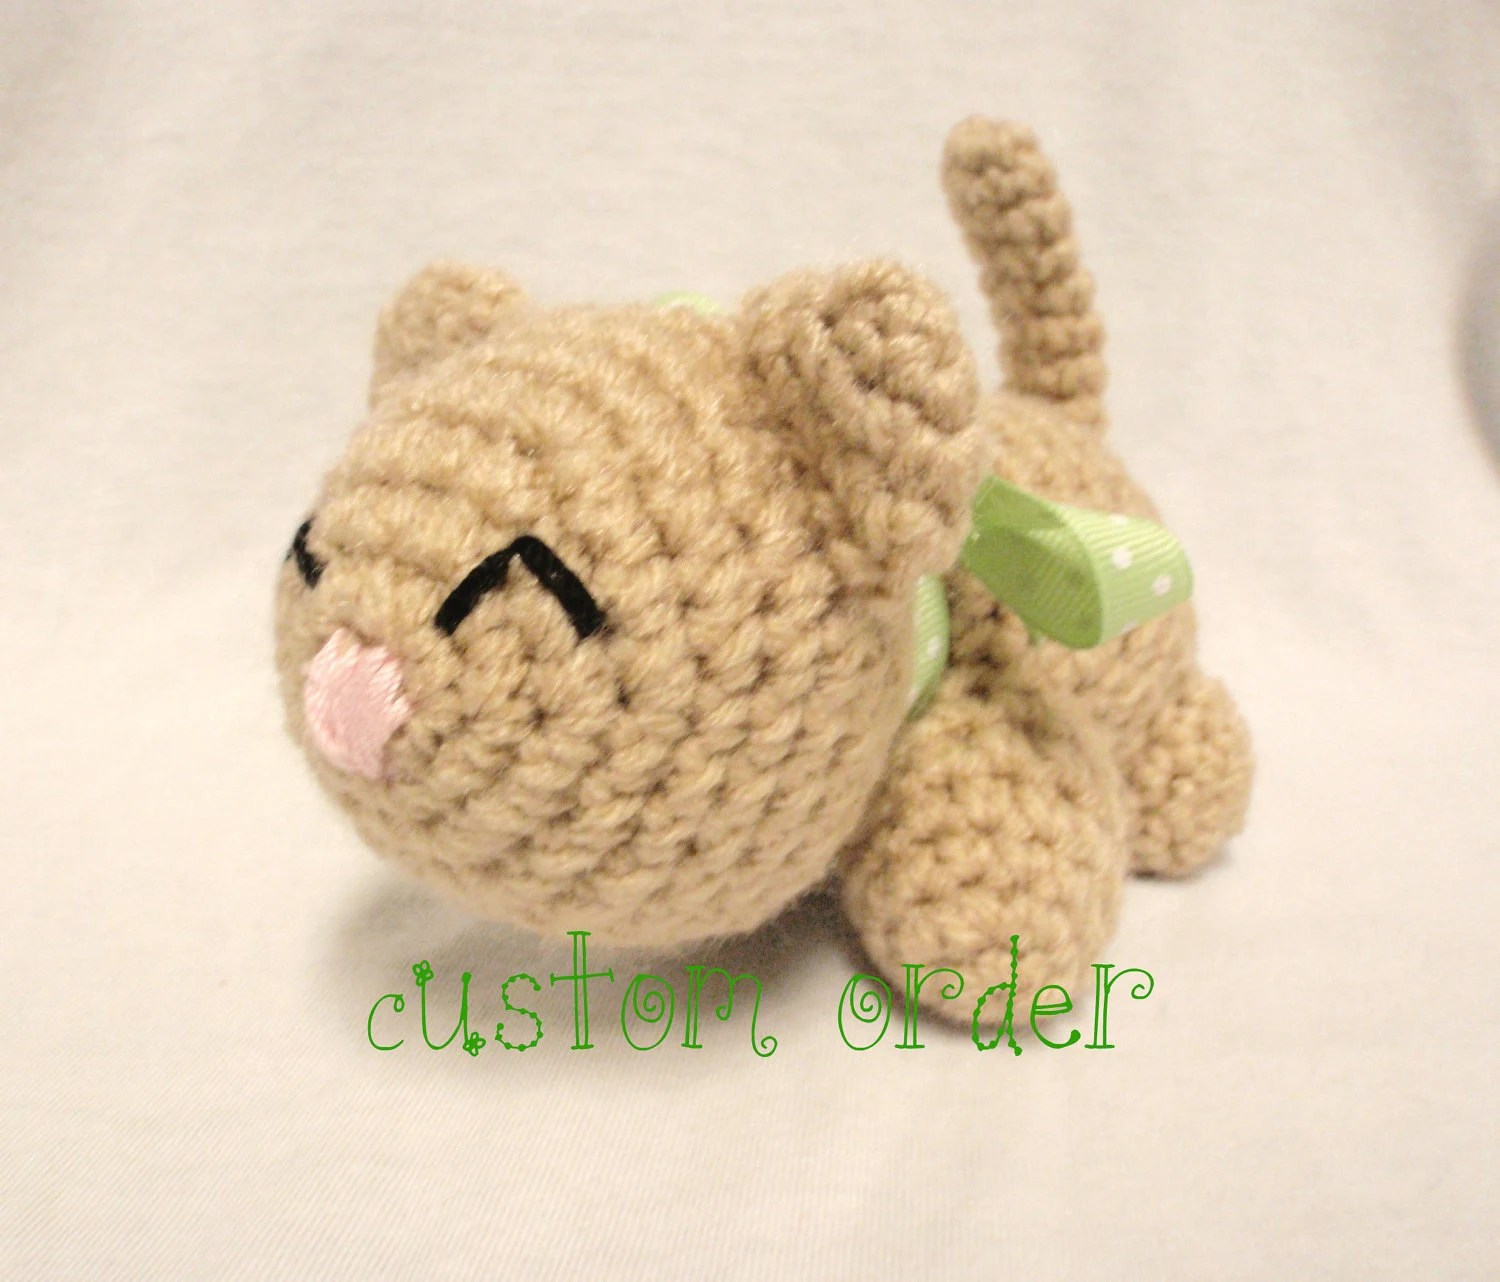 Amigurumi Crochet Kitty, Crochet Cat, Custom Order Just for You